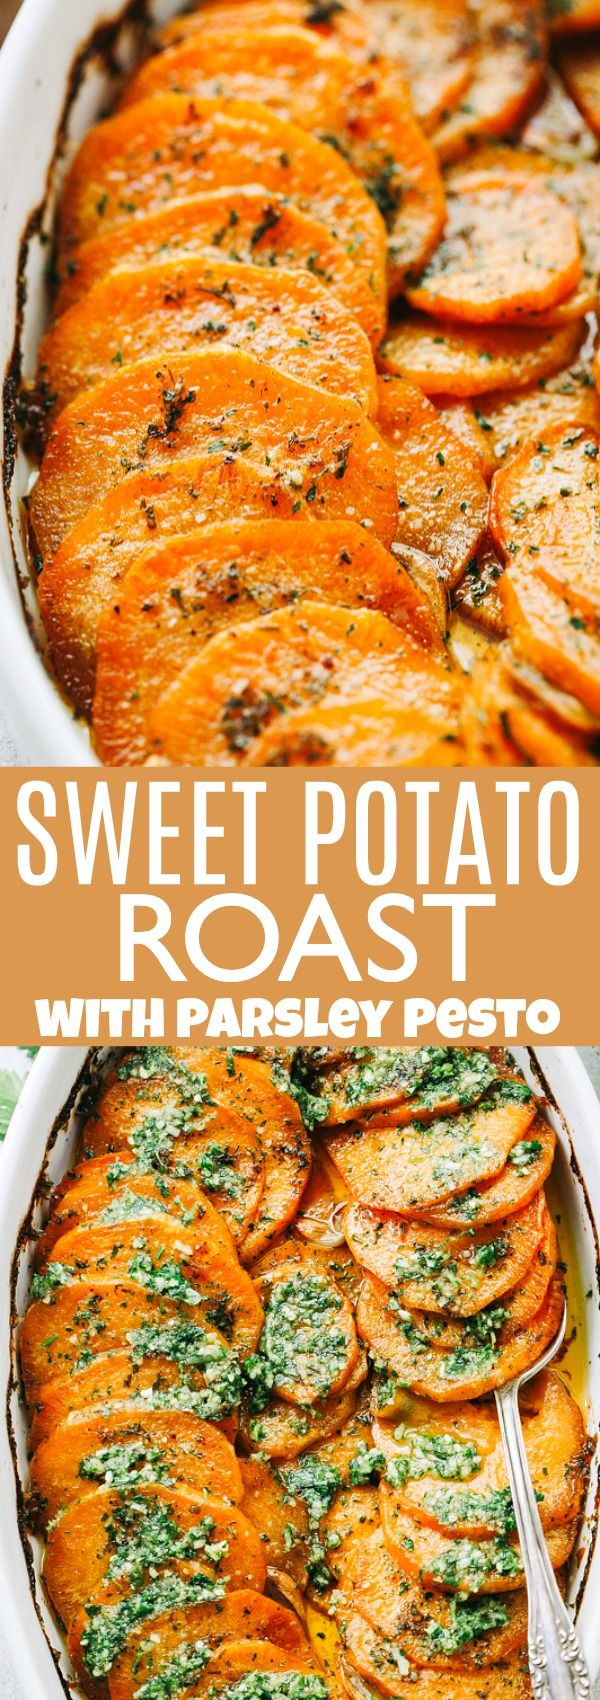 Sweet Potato Roast - Smoky and sweet thinly sliced sweet potatoes served with parsley pesto. These are going to be your new favorite side dish. #sweetpotatoes #thanksgiving #vegetarian #diethood #thanksgivingrecipessidedishes